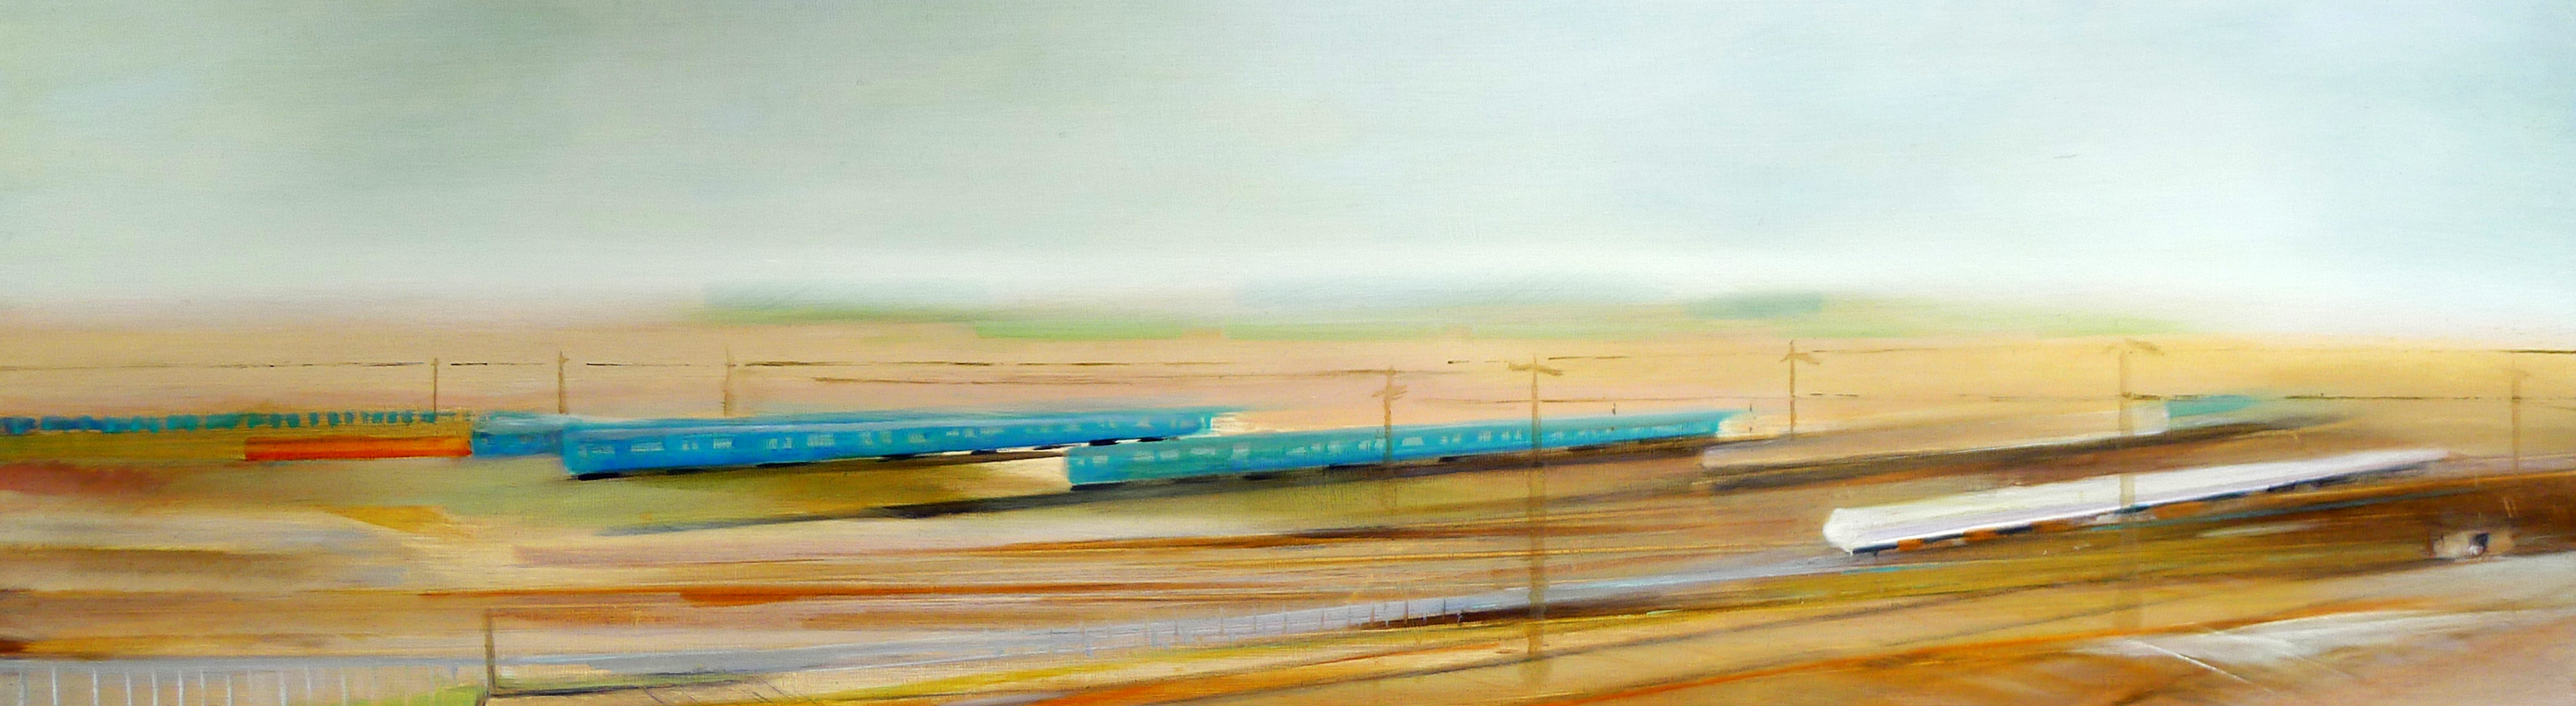 Riikka Ahlfors art painting taide maalaus Trains, 120 cm x 40 cm, oil on wood, 2010